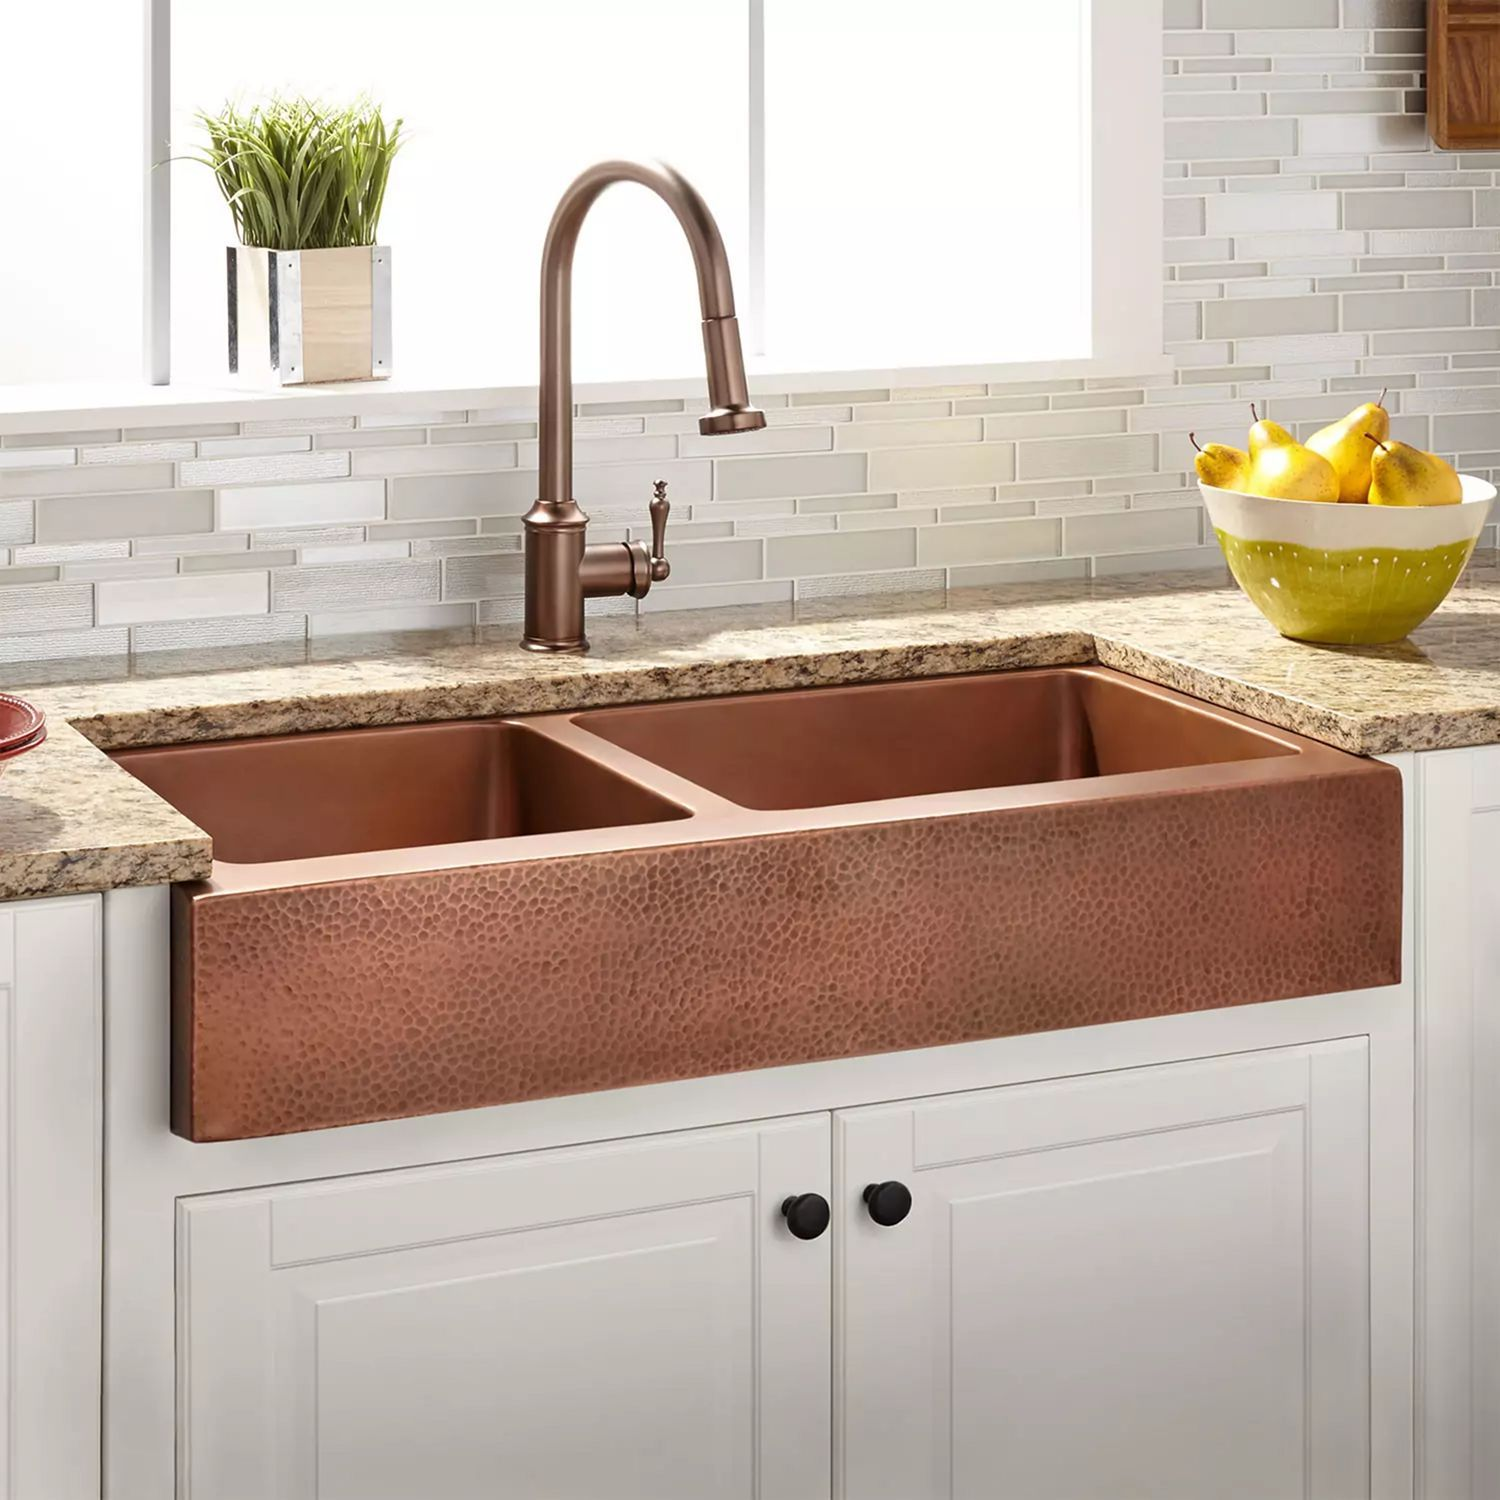 12 Awesome Kitchen Sink Design Ideas For Comfortable Kitchen Copper Farmhouse Sinks Farmhouse Sink Kitchen Farmhouse Sink